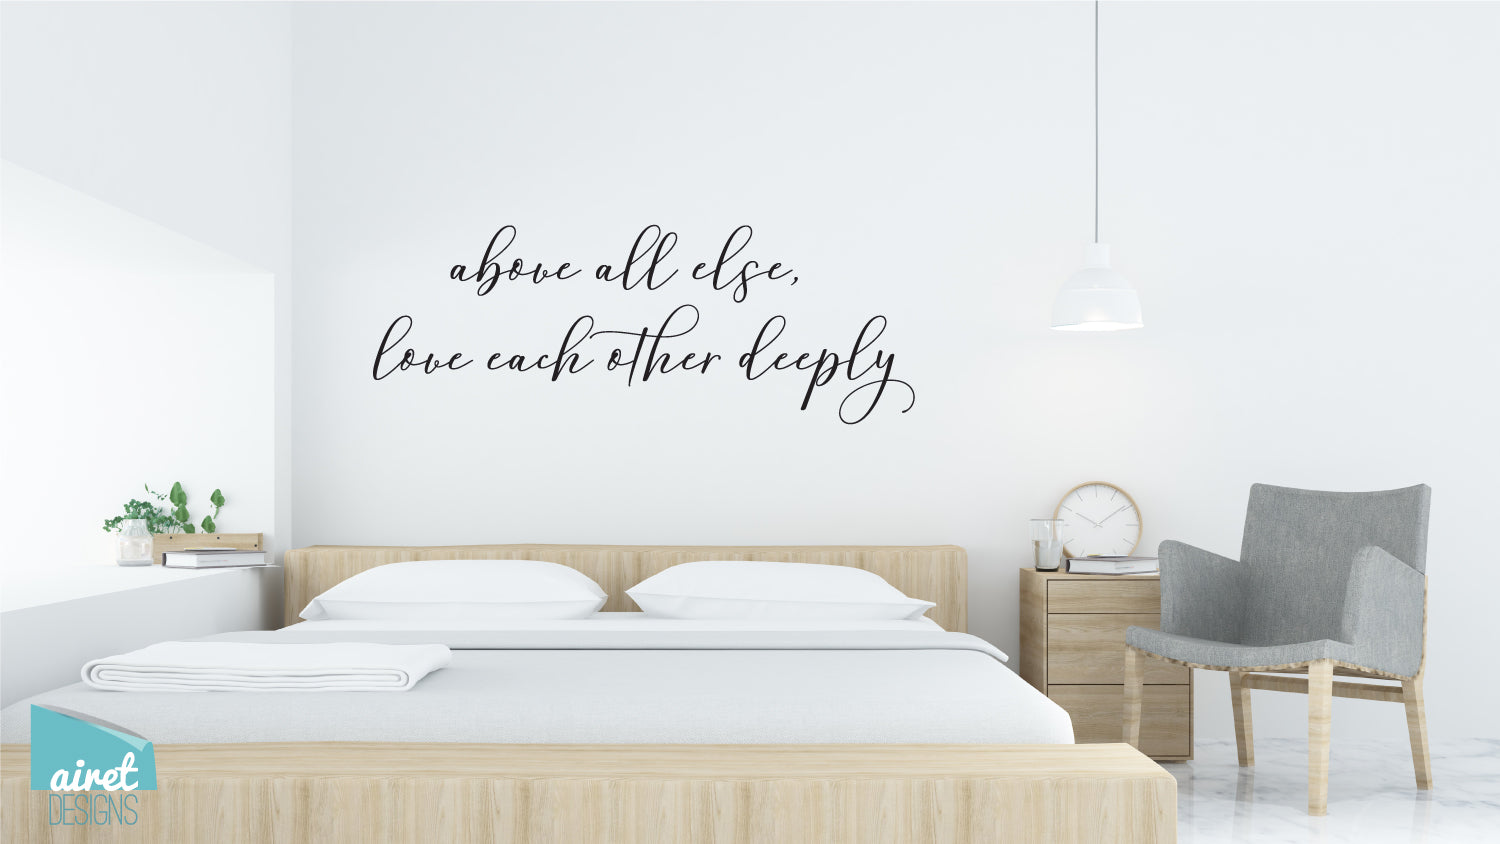 above all else love each other deeply - 1 Peter 4:8 Religious Scripture Bible Christian Vinyl Decal Wall Decor Sticker family wedding couple home sign sticker v7